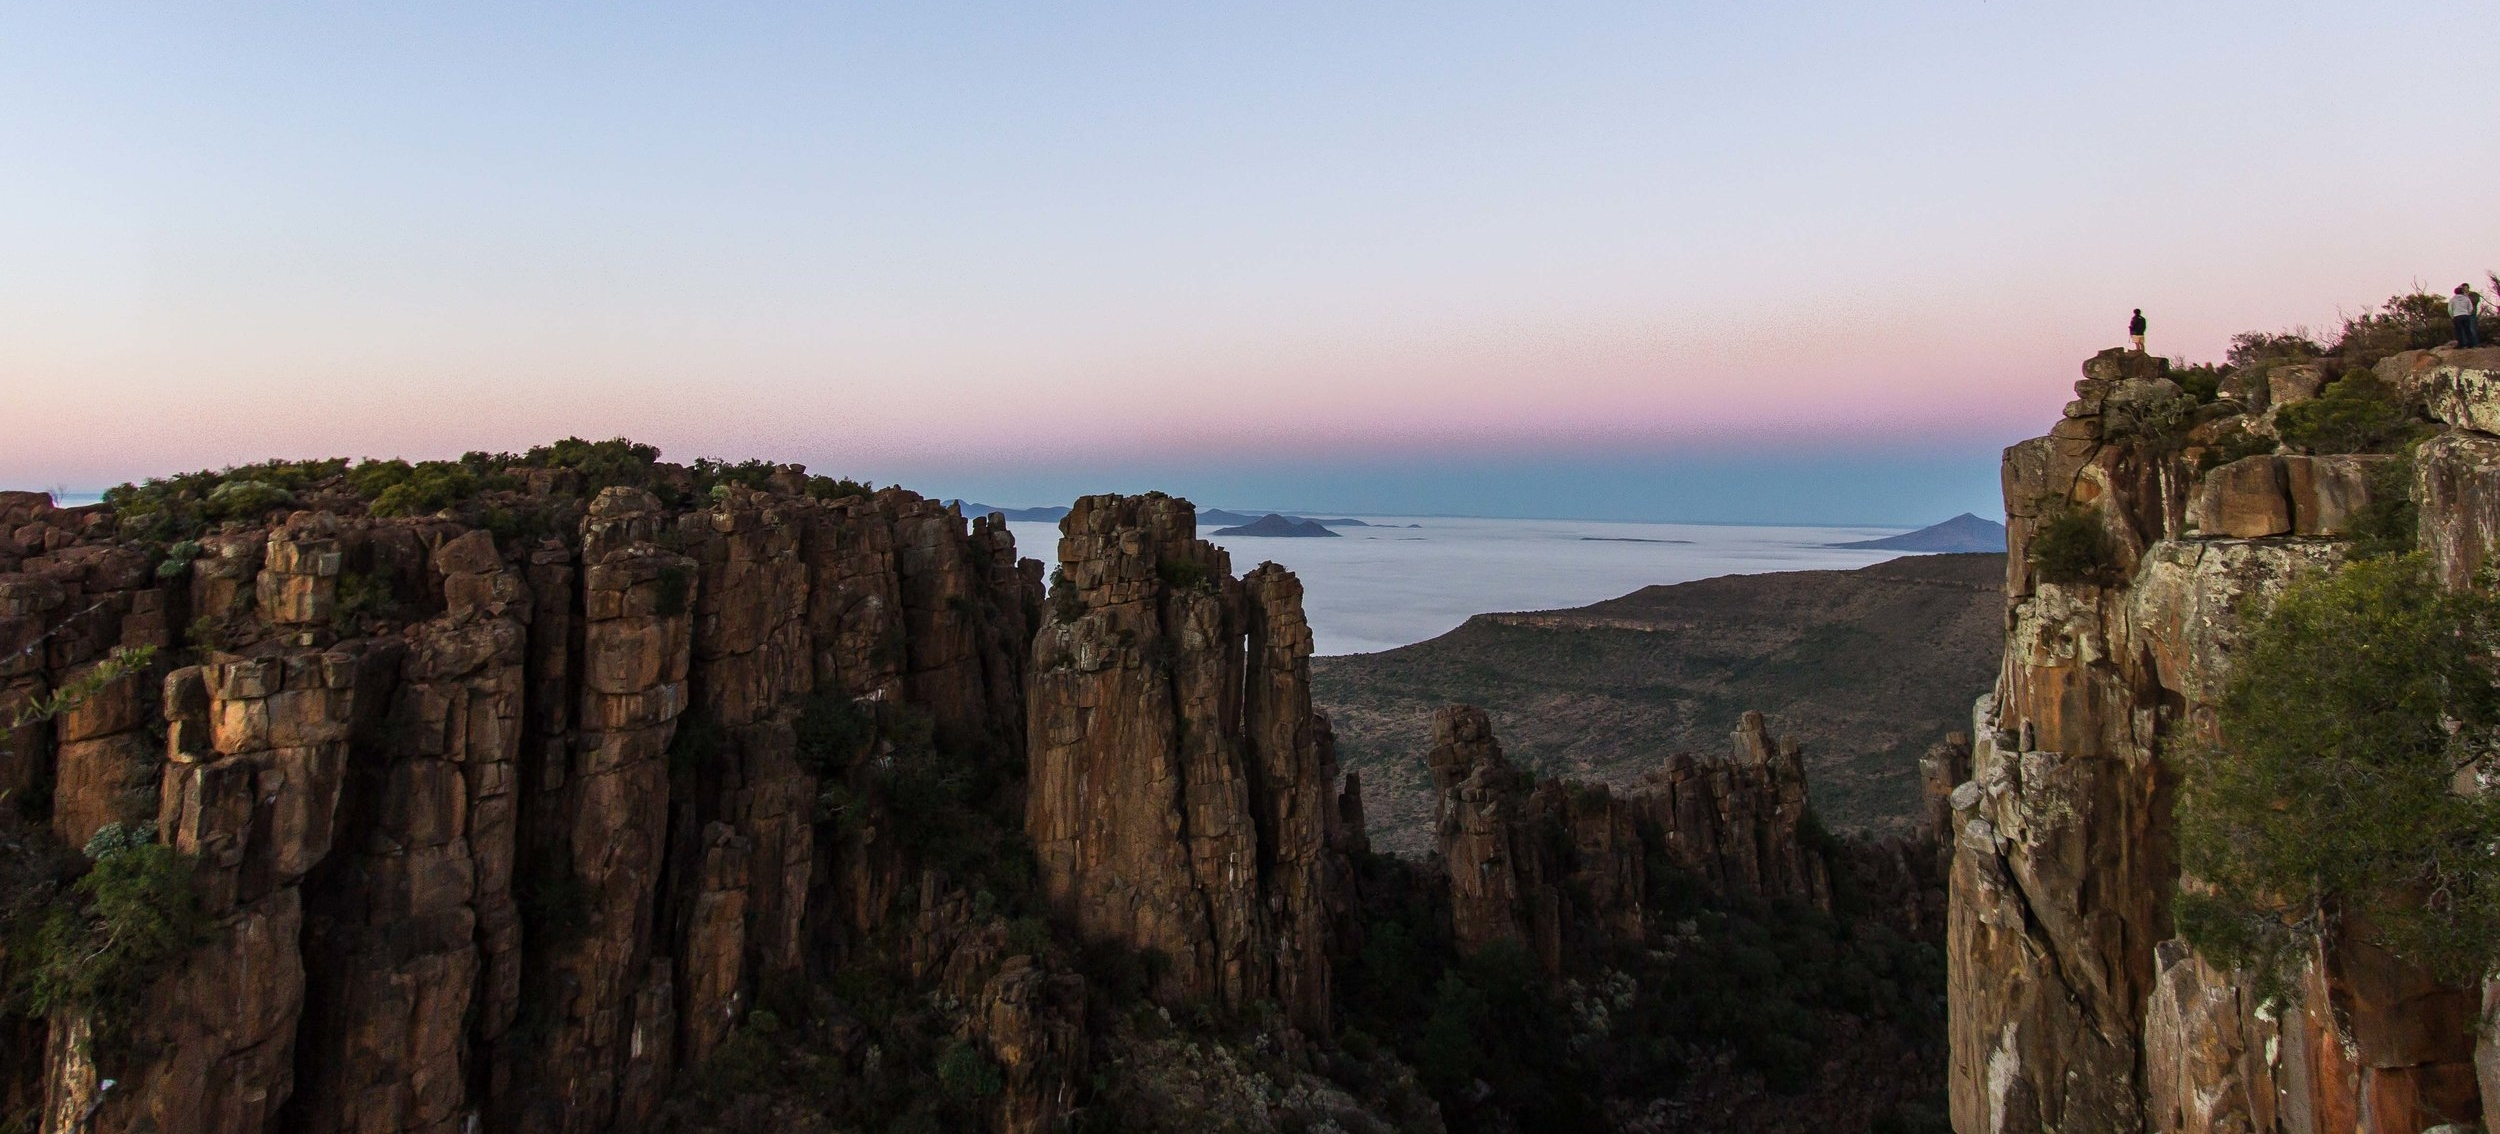 valley-of-desolation-karoo-tyson-jopson-1.jpg